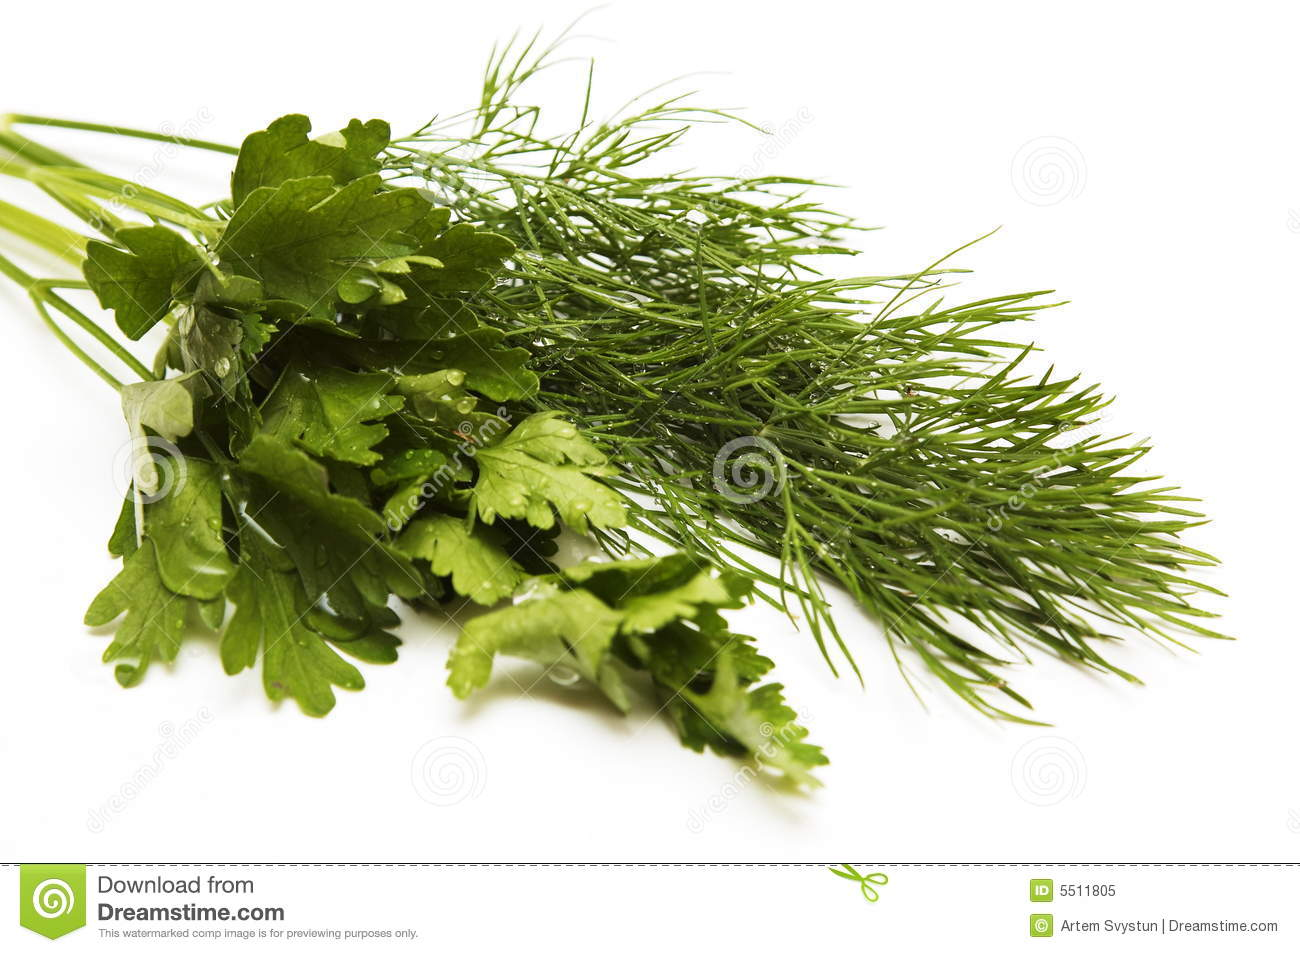 Dill and parsley for a salad